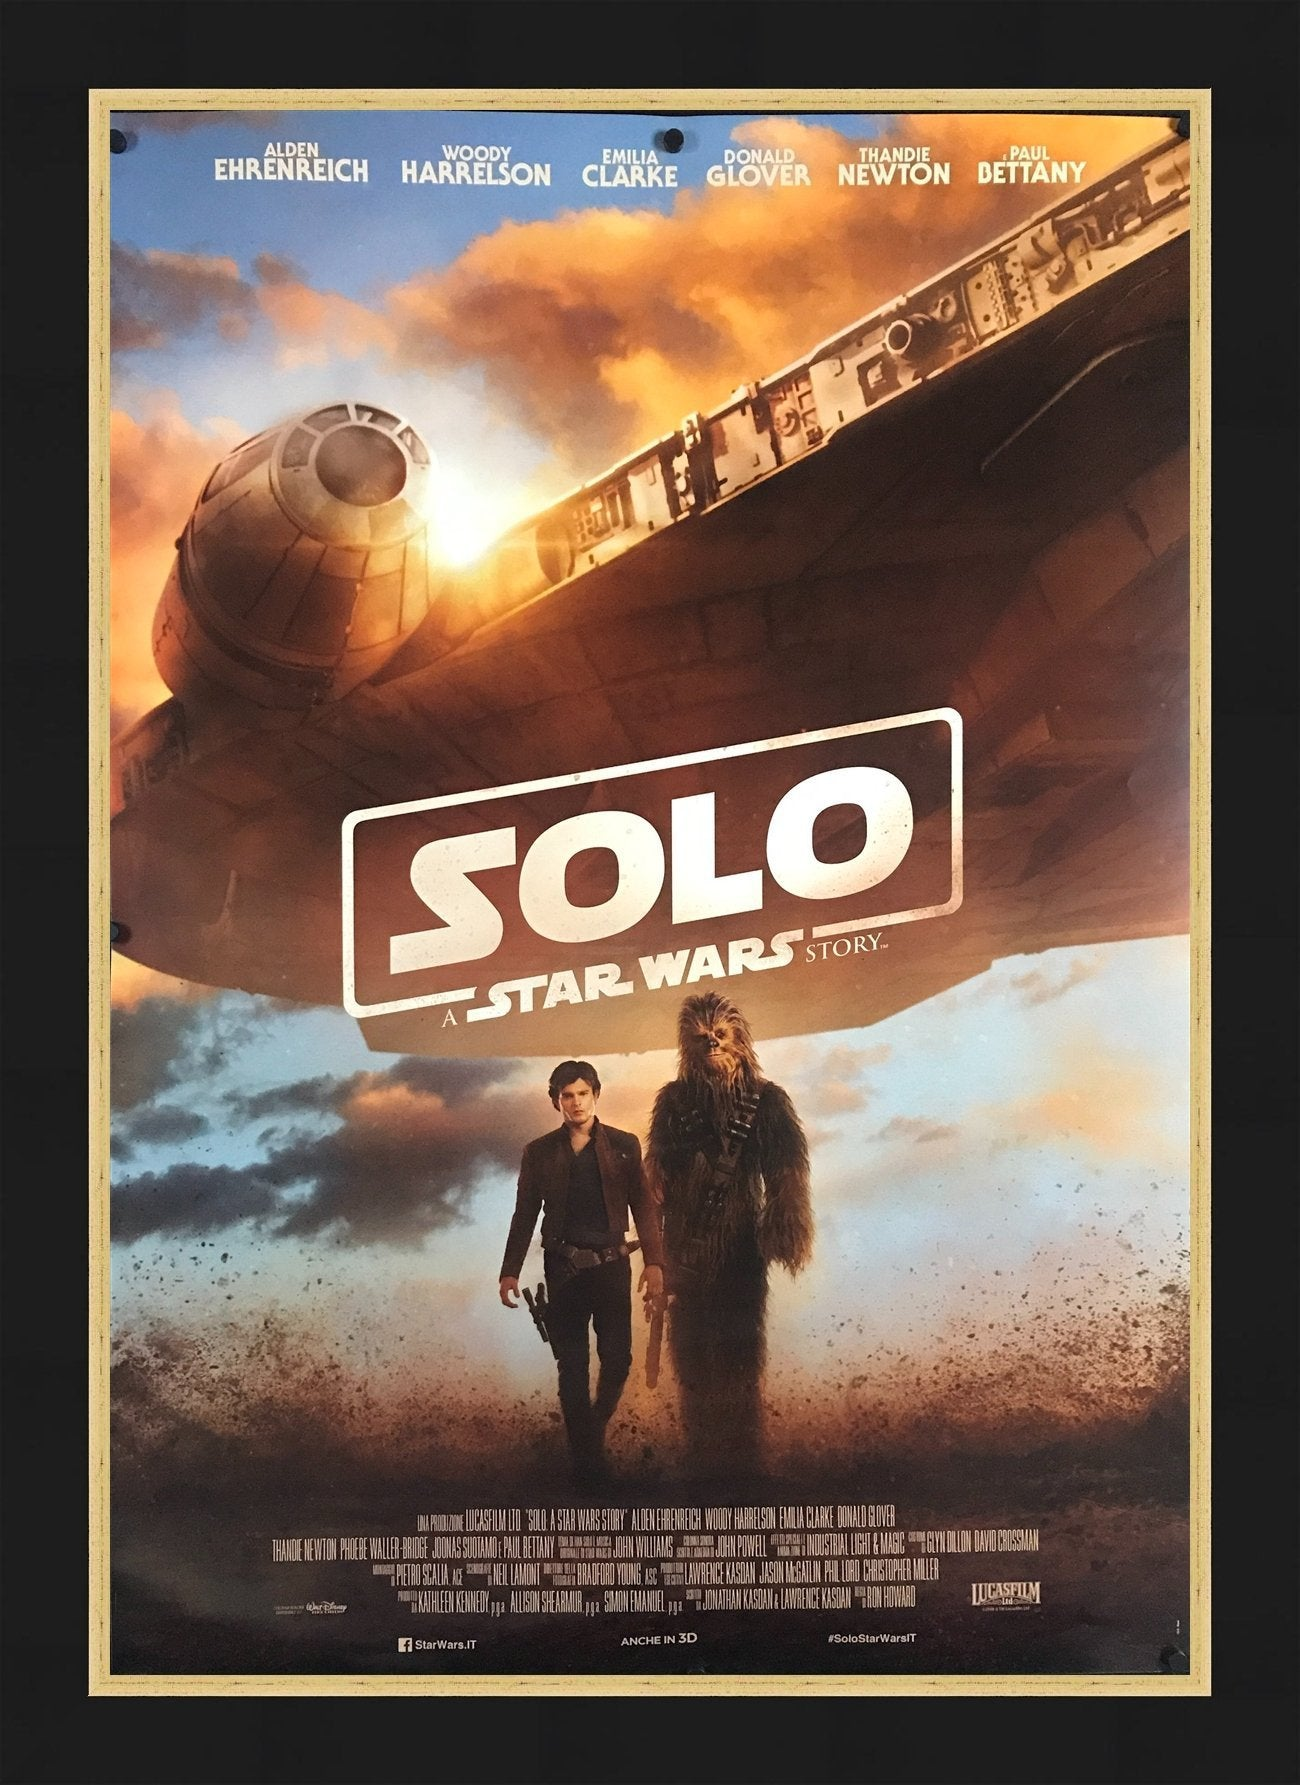 An original Italian move poster for the film Solo, a Star Wars story